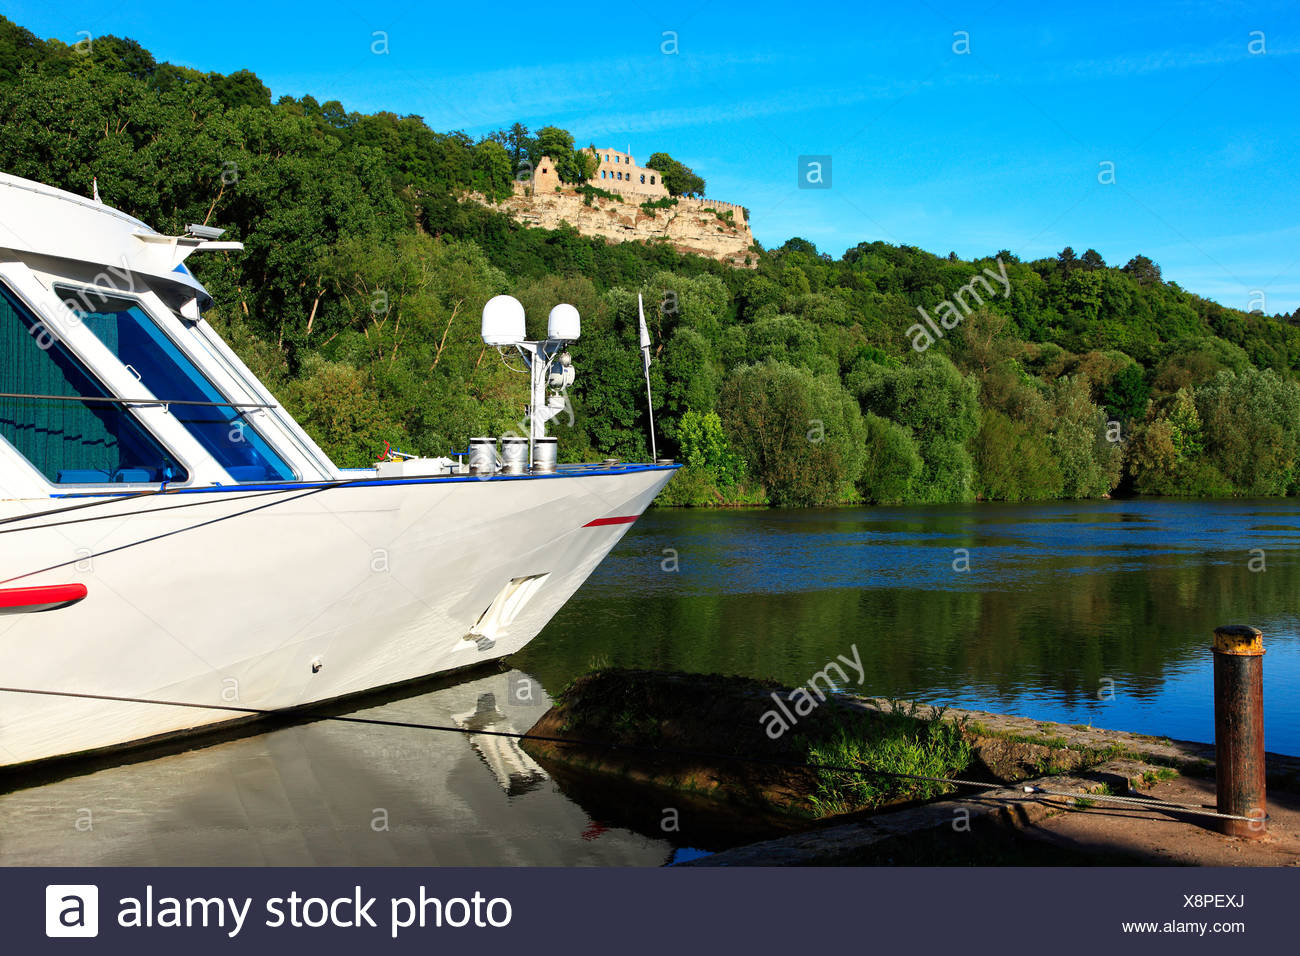 A boat moored on the rhine - Stock Image